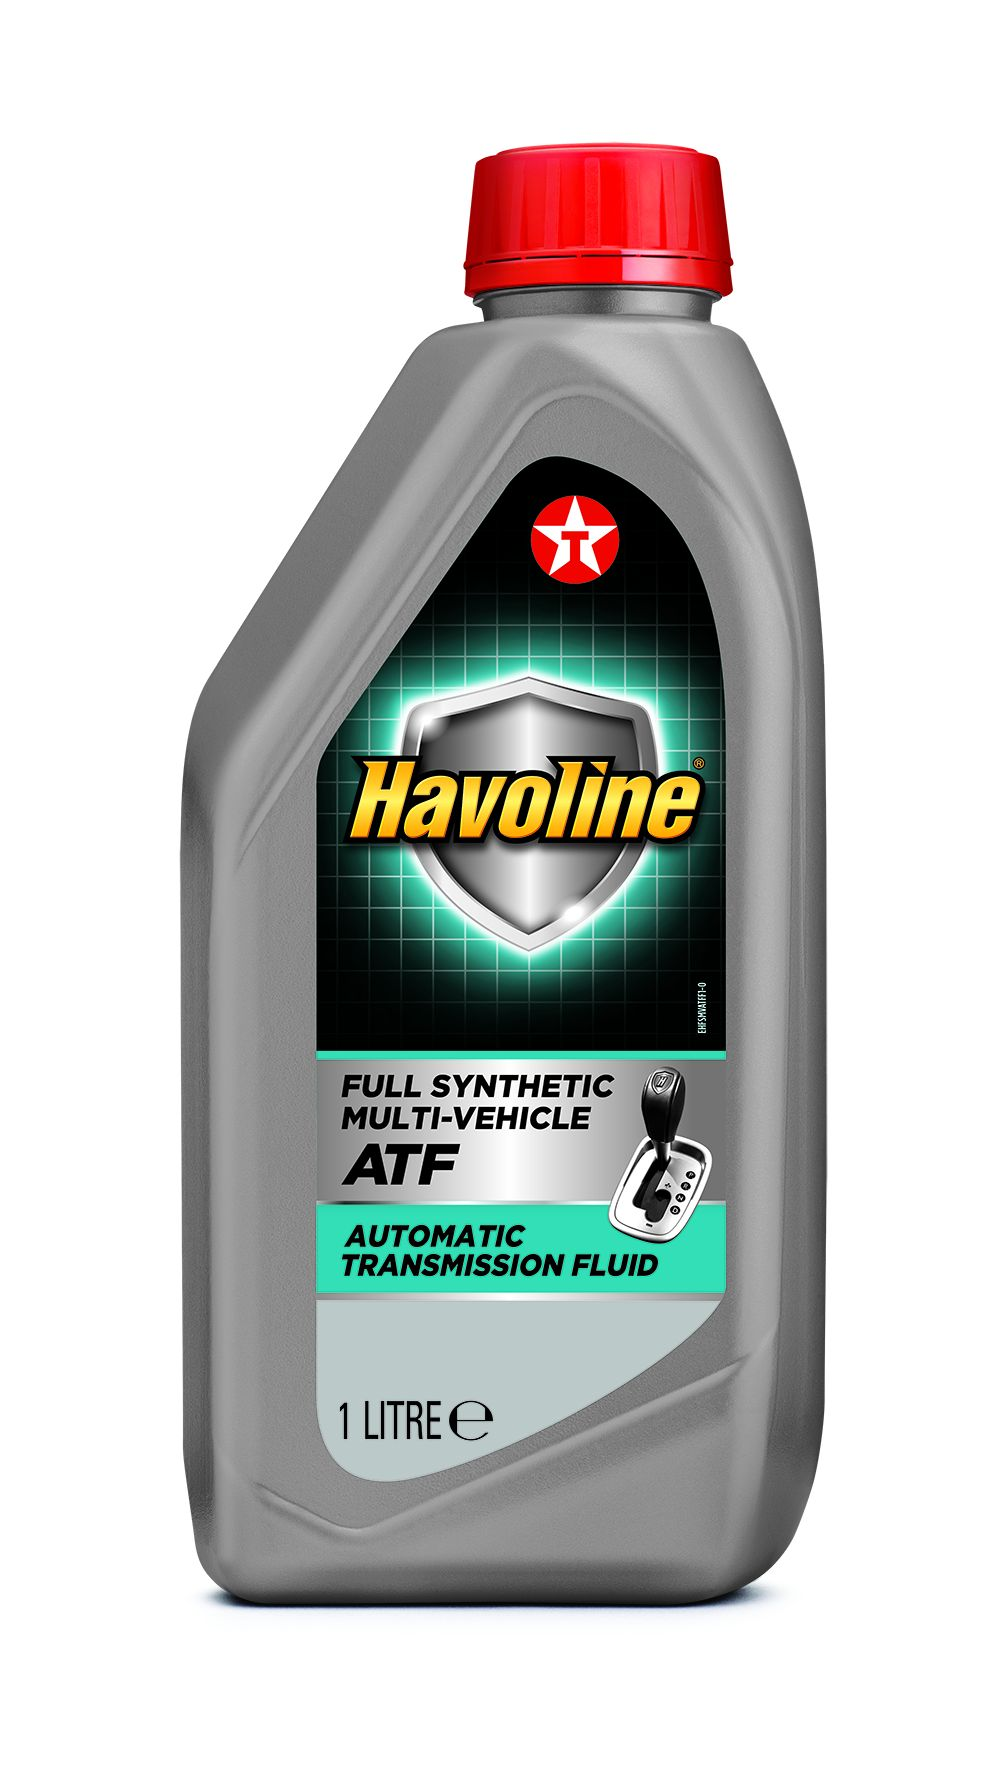 HAVOLINE FS MULTI-VEHICLE ATF